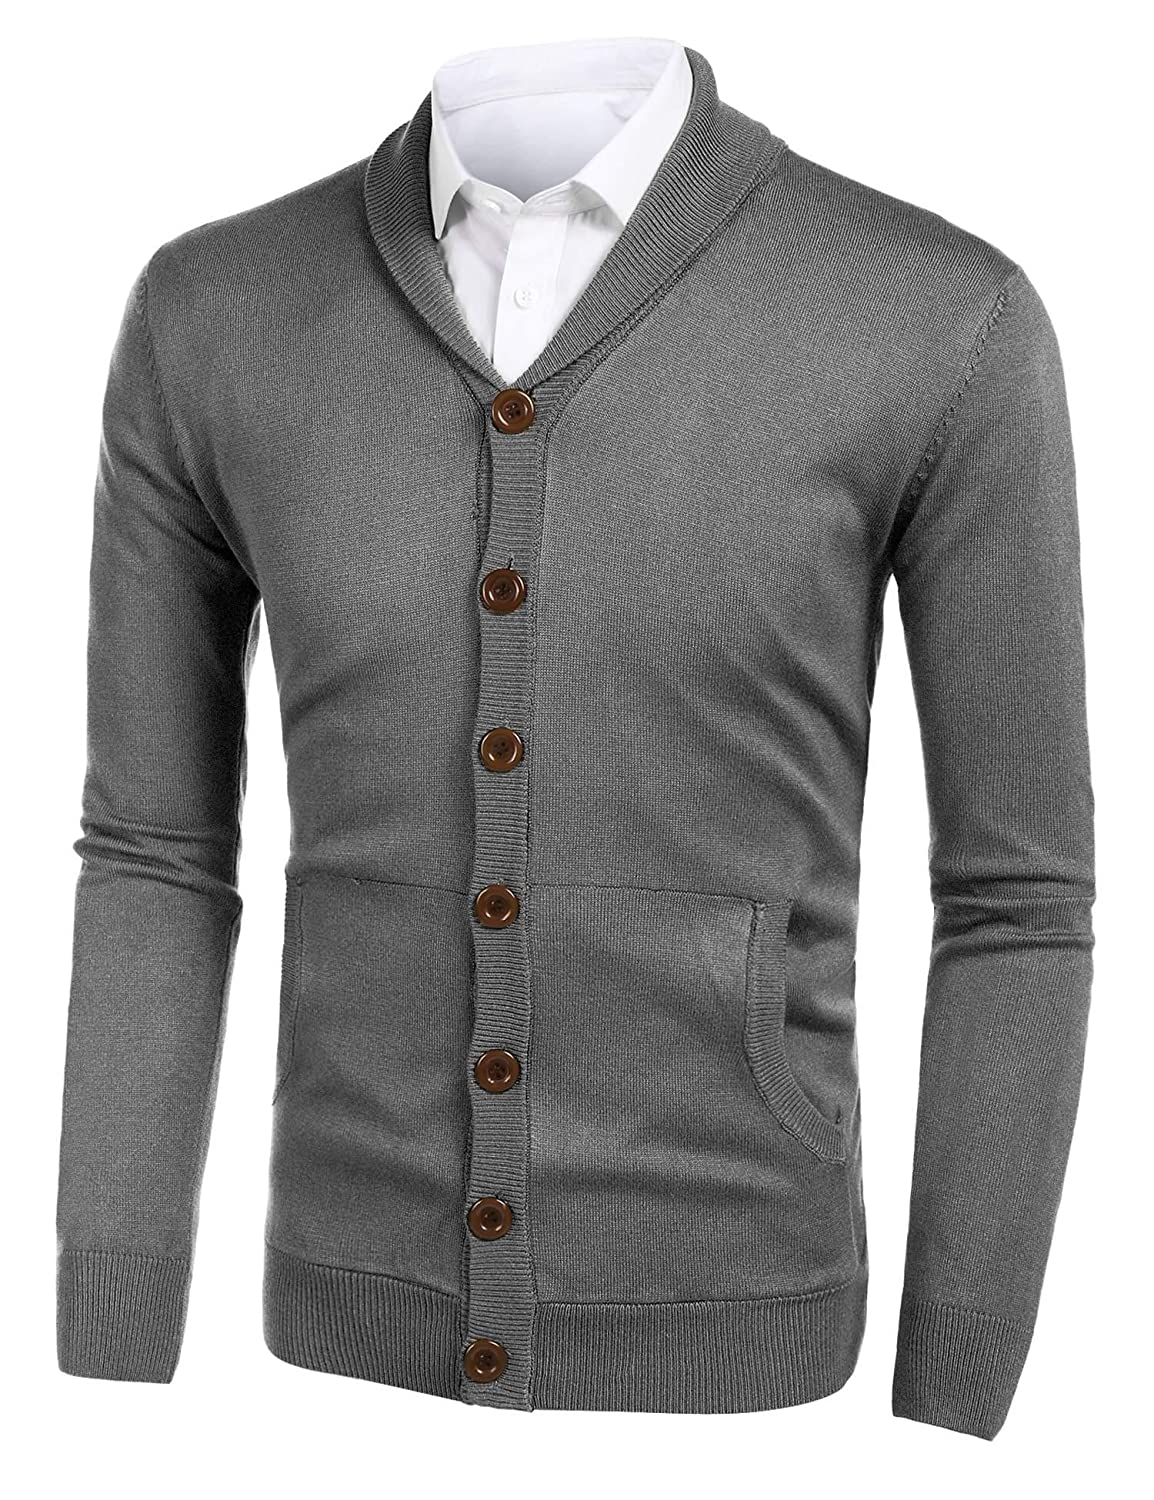 Misakia Mens Pocket Cardigan Knitwear Long Sleeve Shawl Collar Elbow Patch Slim Fit Button Sweater